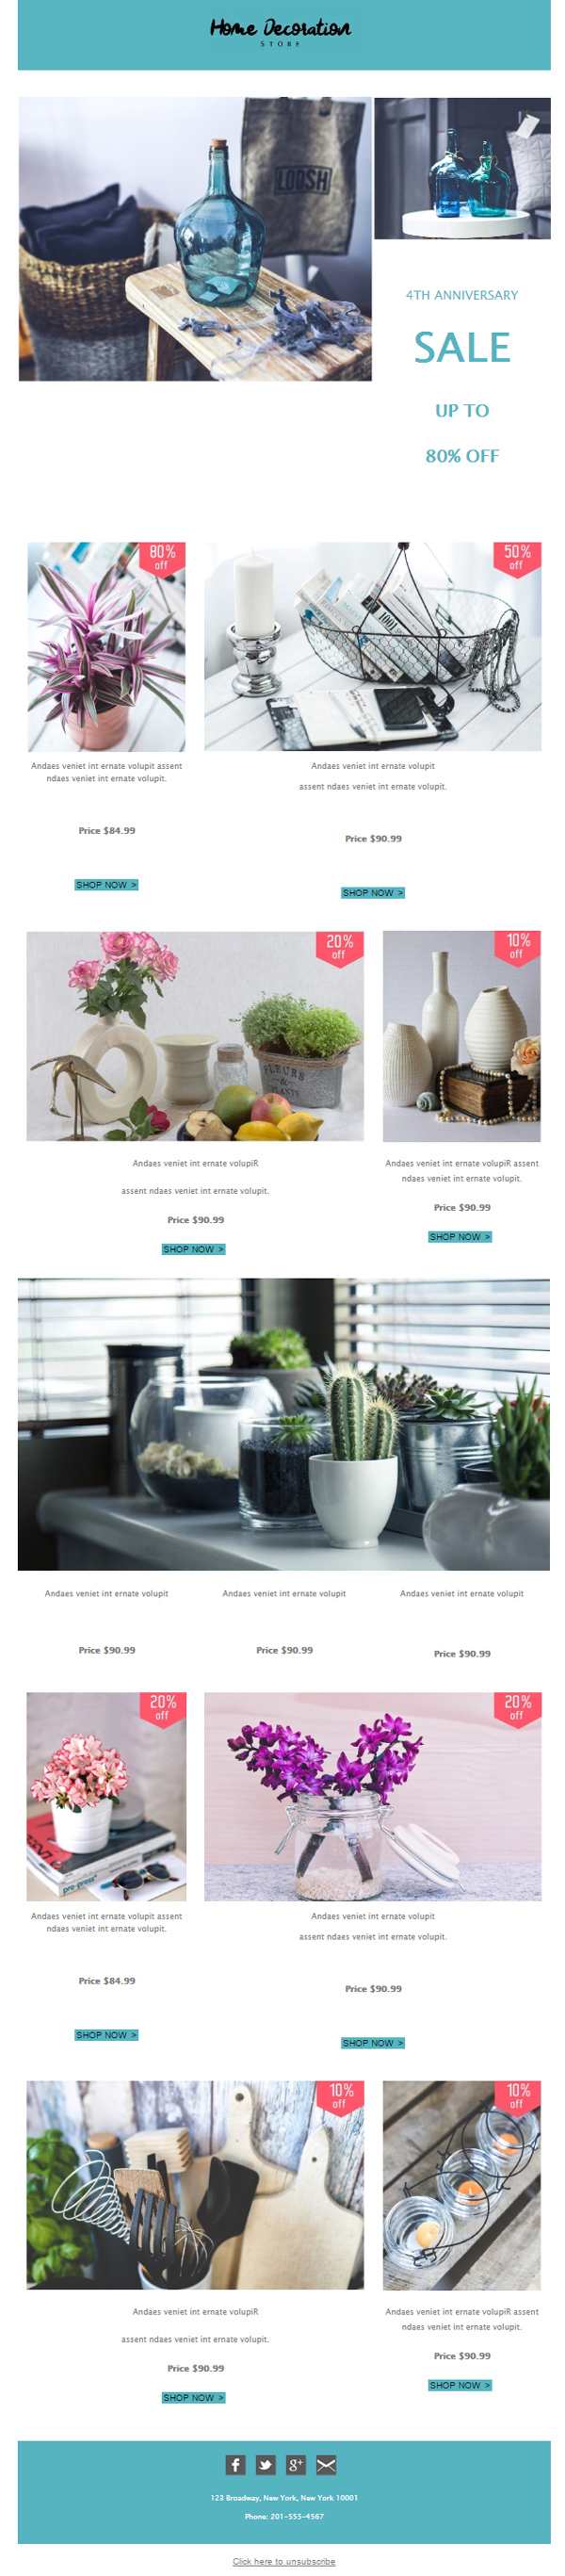 Templates Emailing Retail Home Decor Sarbacane